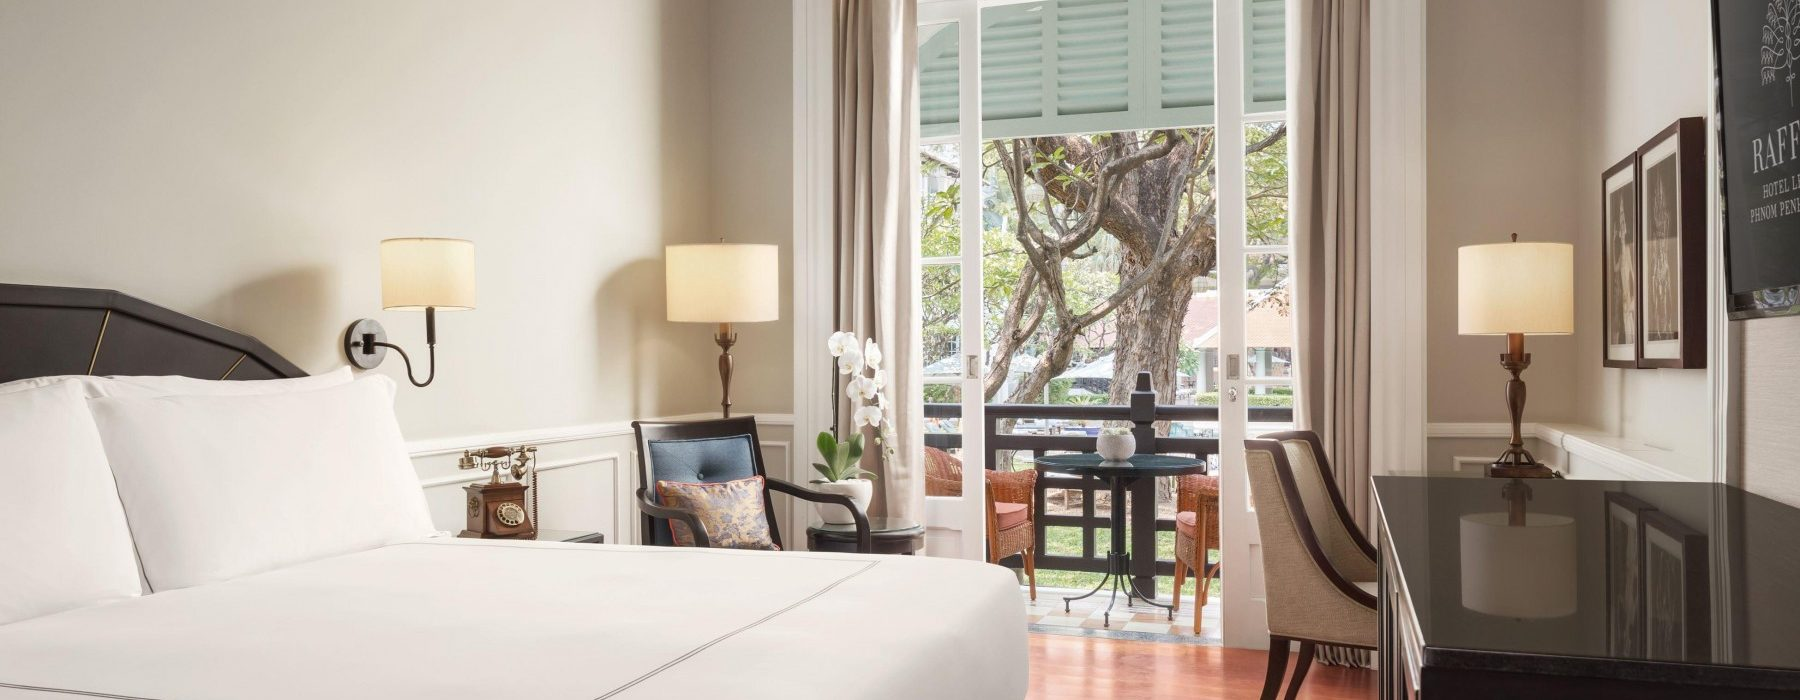 Raffles Hotel Le Royal Phnom Penh - Family Offer 50% off for The 2nd Room